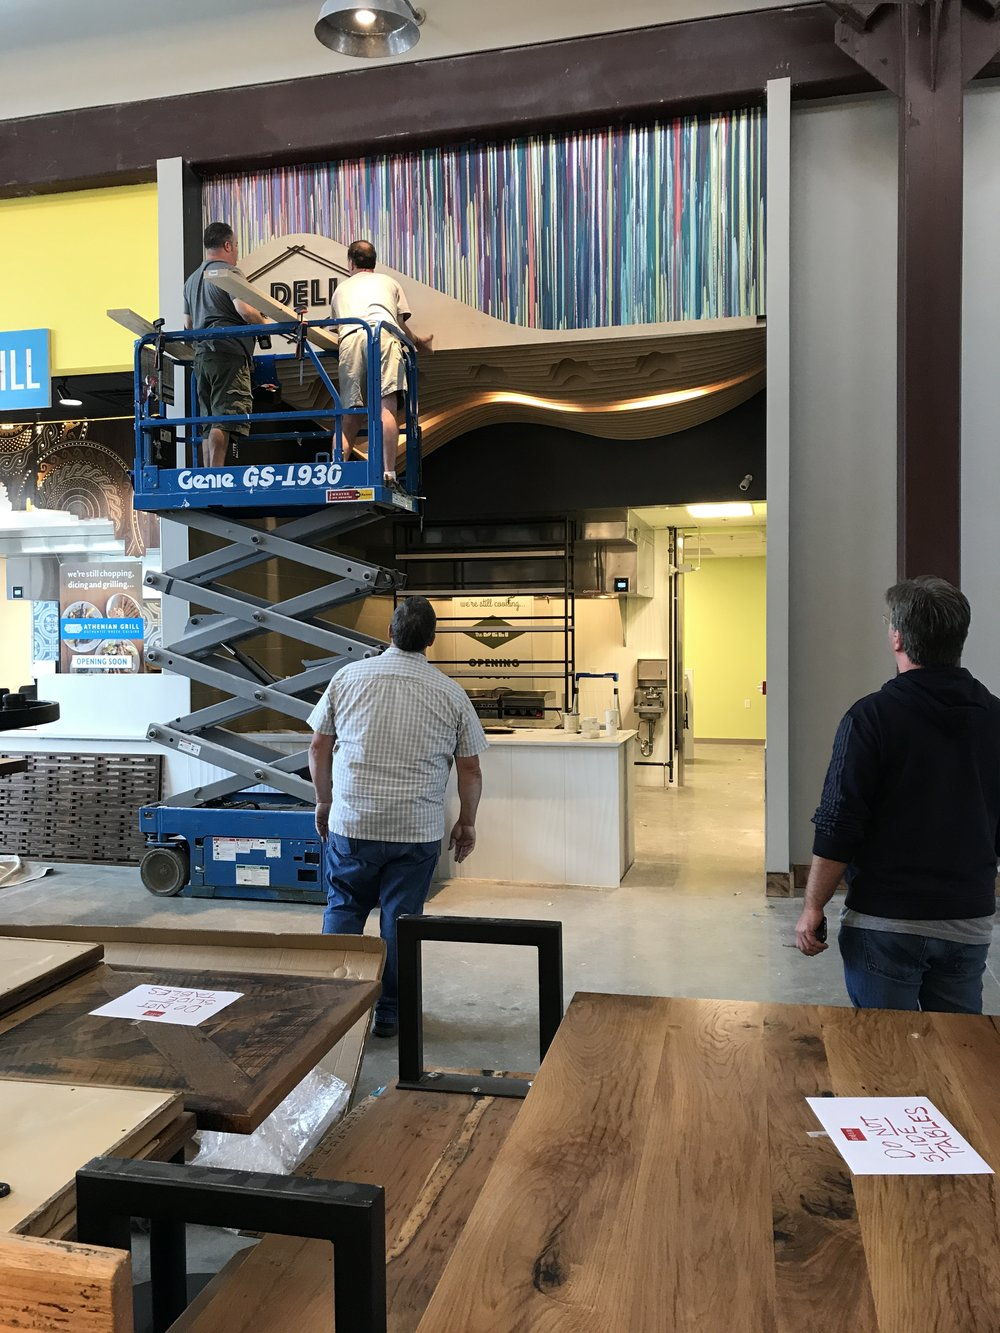 Installing Sarah Heller's beautiful mural panels along with the Deli sign